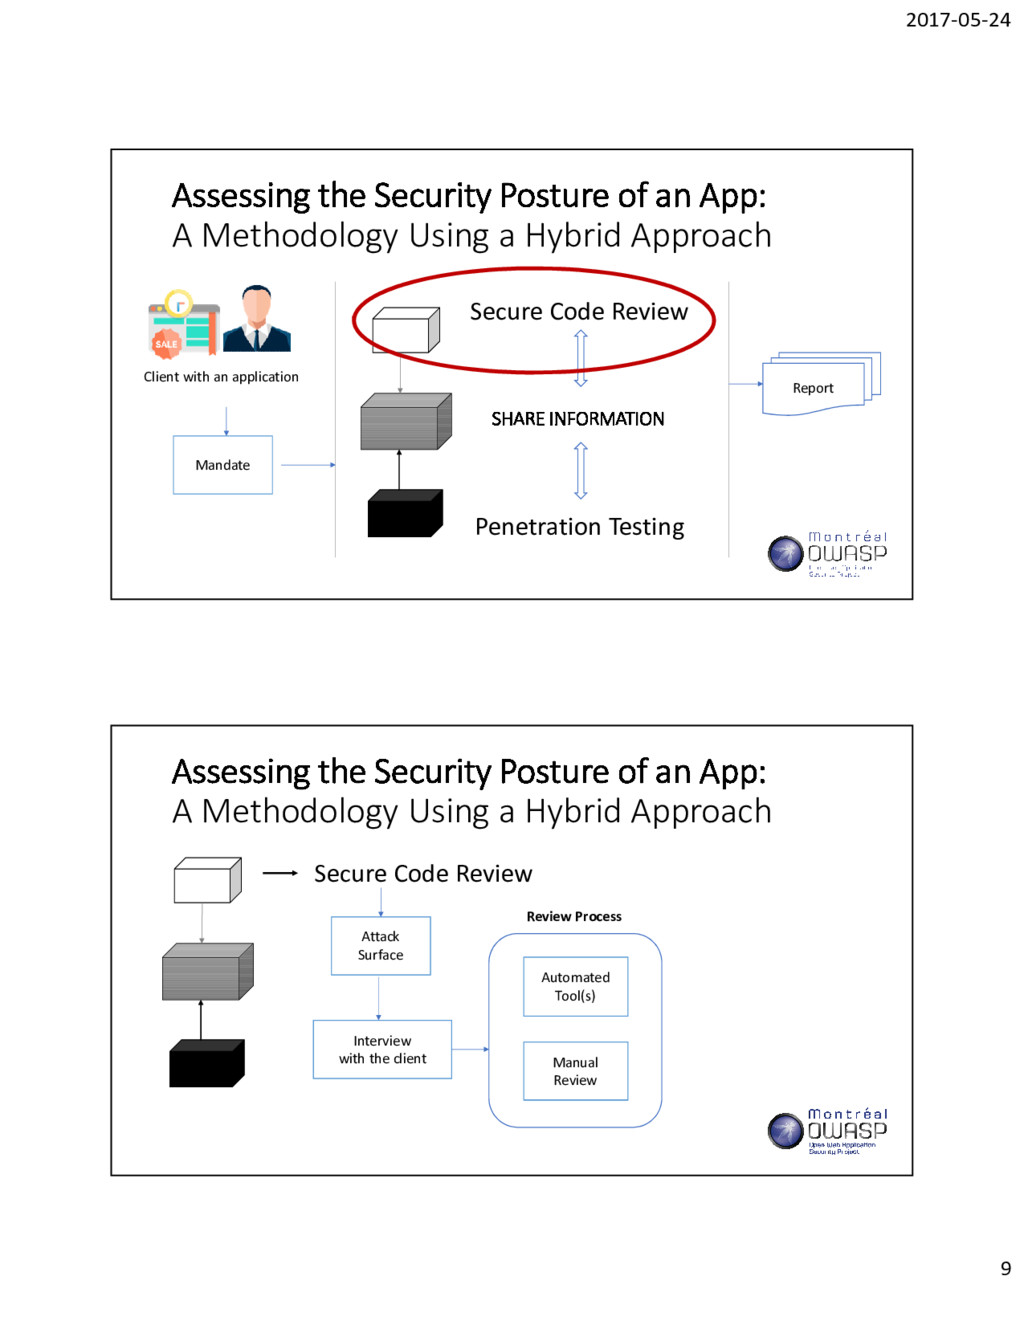 2017-05-24 9 Assessing the Security Posture of ...